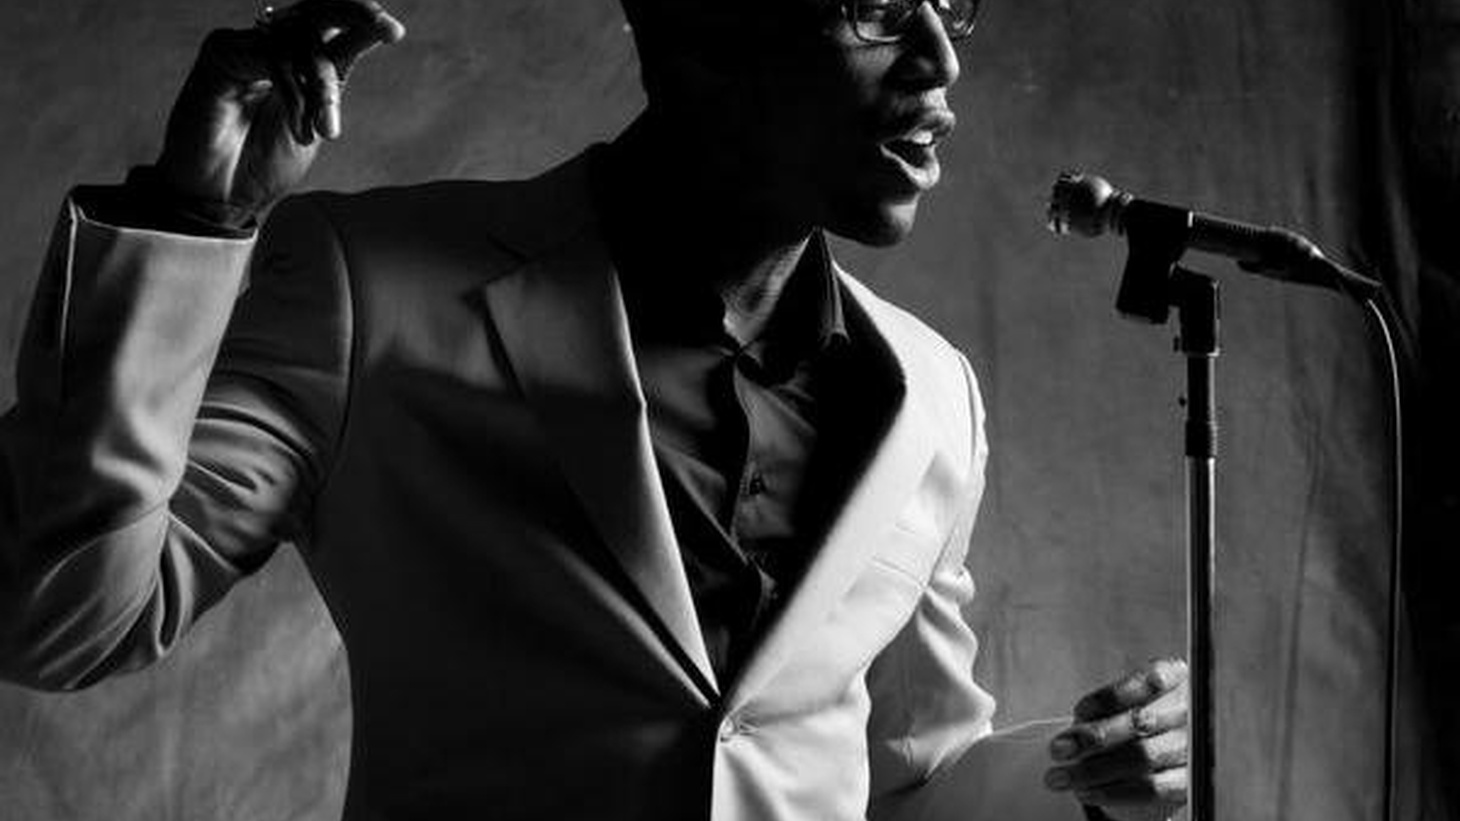 Soulful sound of Raphael Saadiq live on Morning Becomes Eclectic at 11:15am.